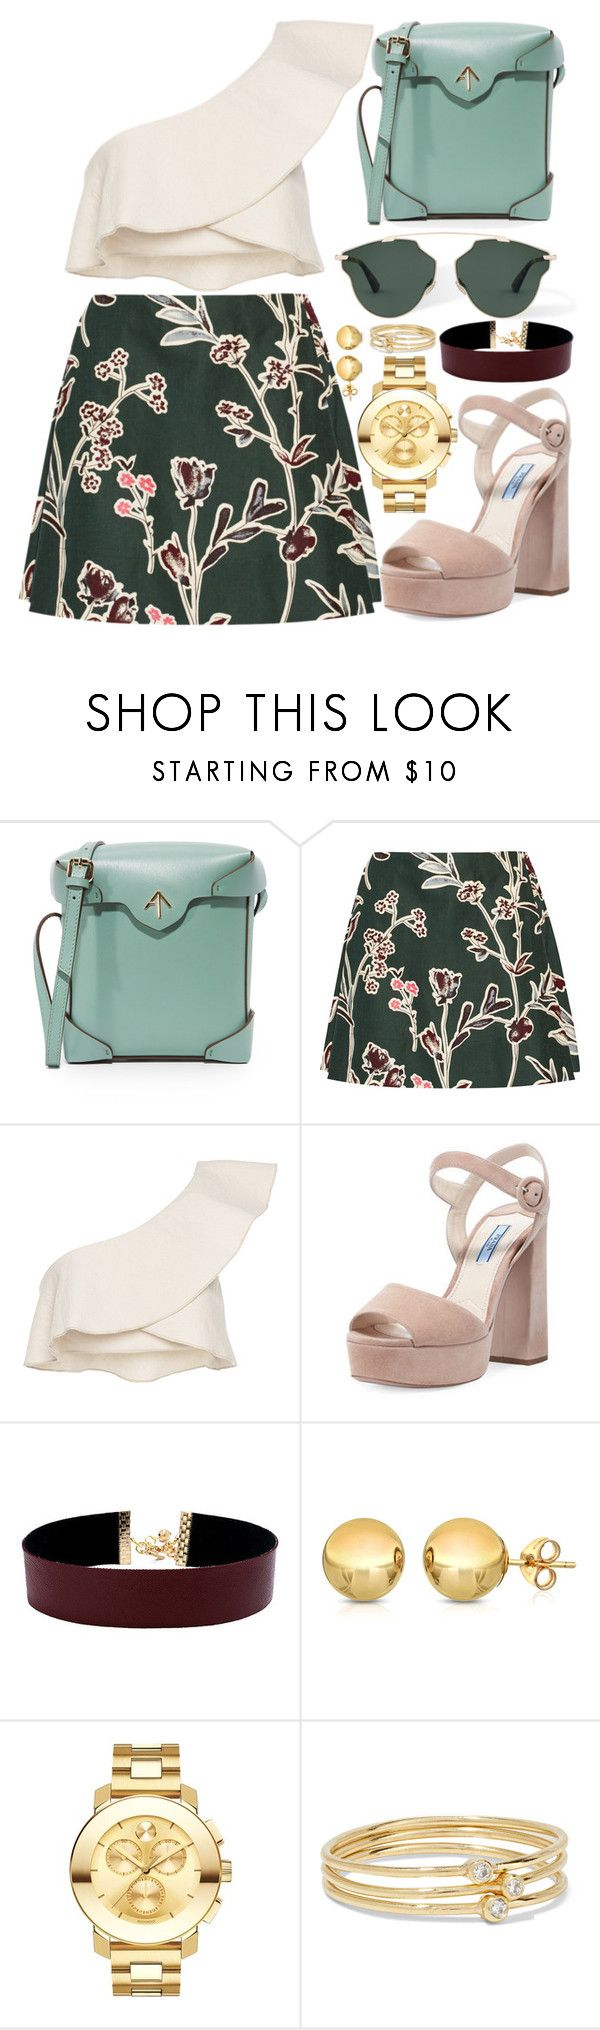 """Burgundy Blooms - Spring's Dark Side"" by rita8100 ❤ liked on Polyvore featuring MANU Atelier, Marni, Isabel Marant, Prada, Vanessa Mooney, Movado and Jennifer Meyer Jewelry"